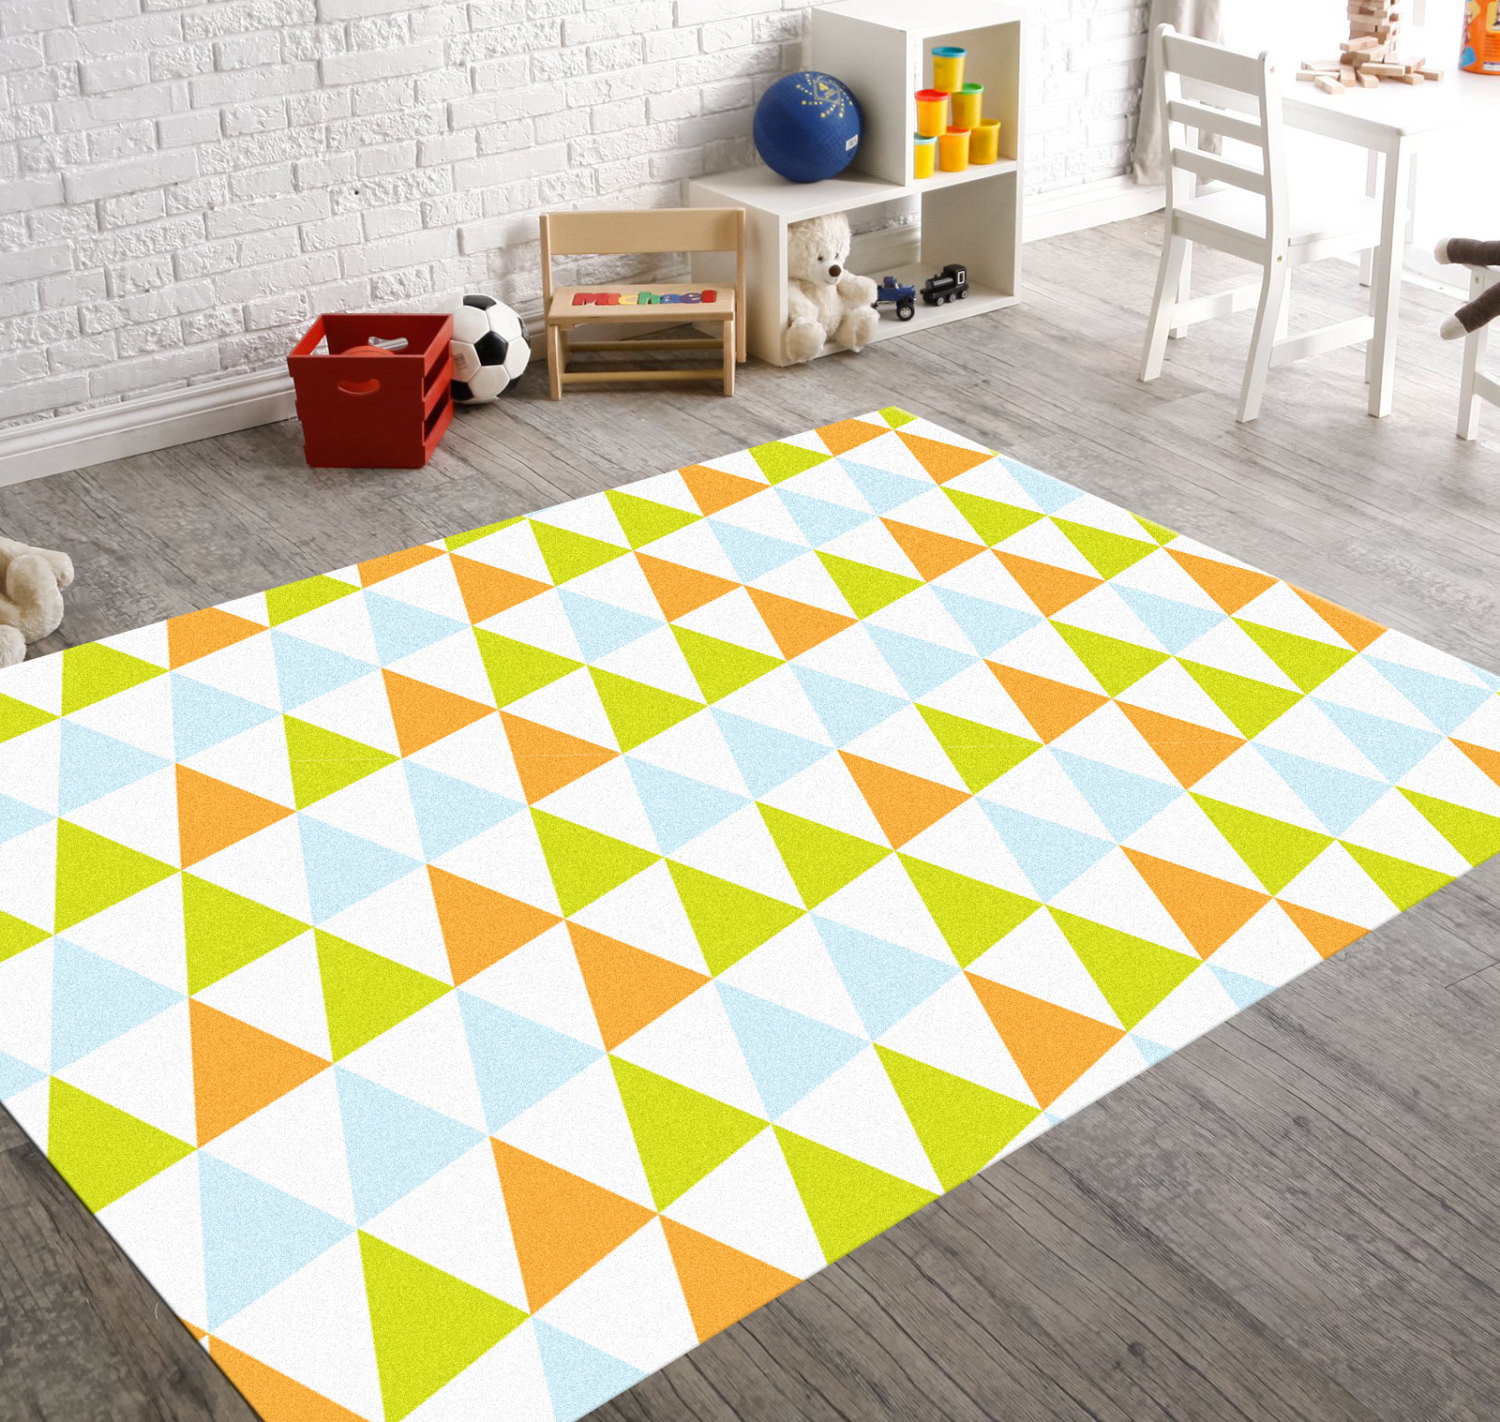 Carpet Designs for Kids Best Kids Rugs and Carpets In Singapore